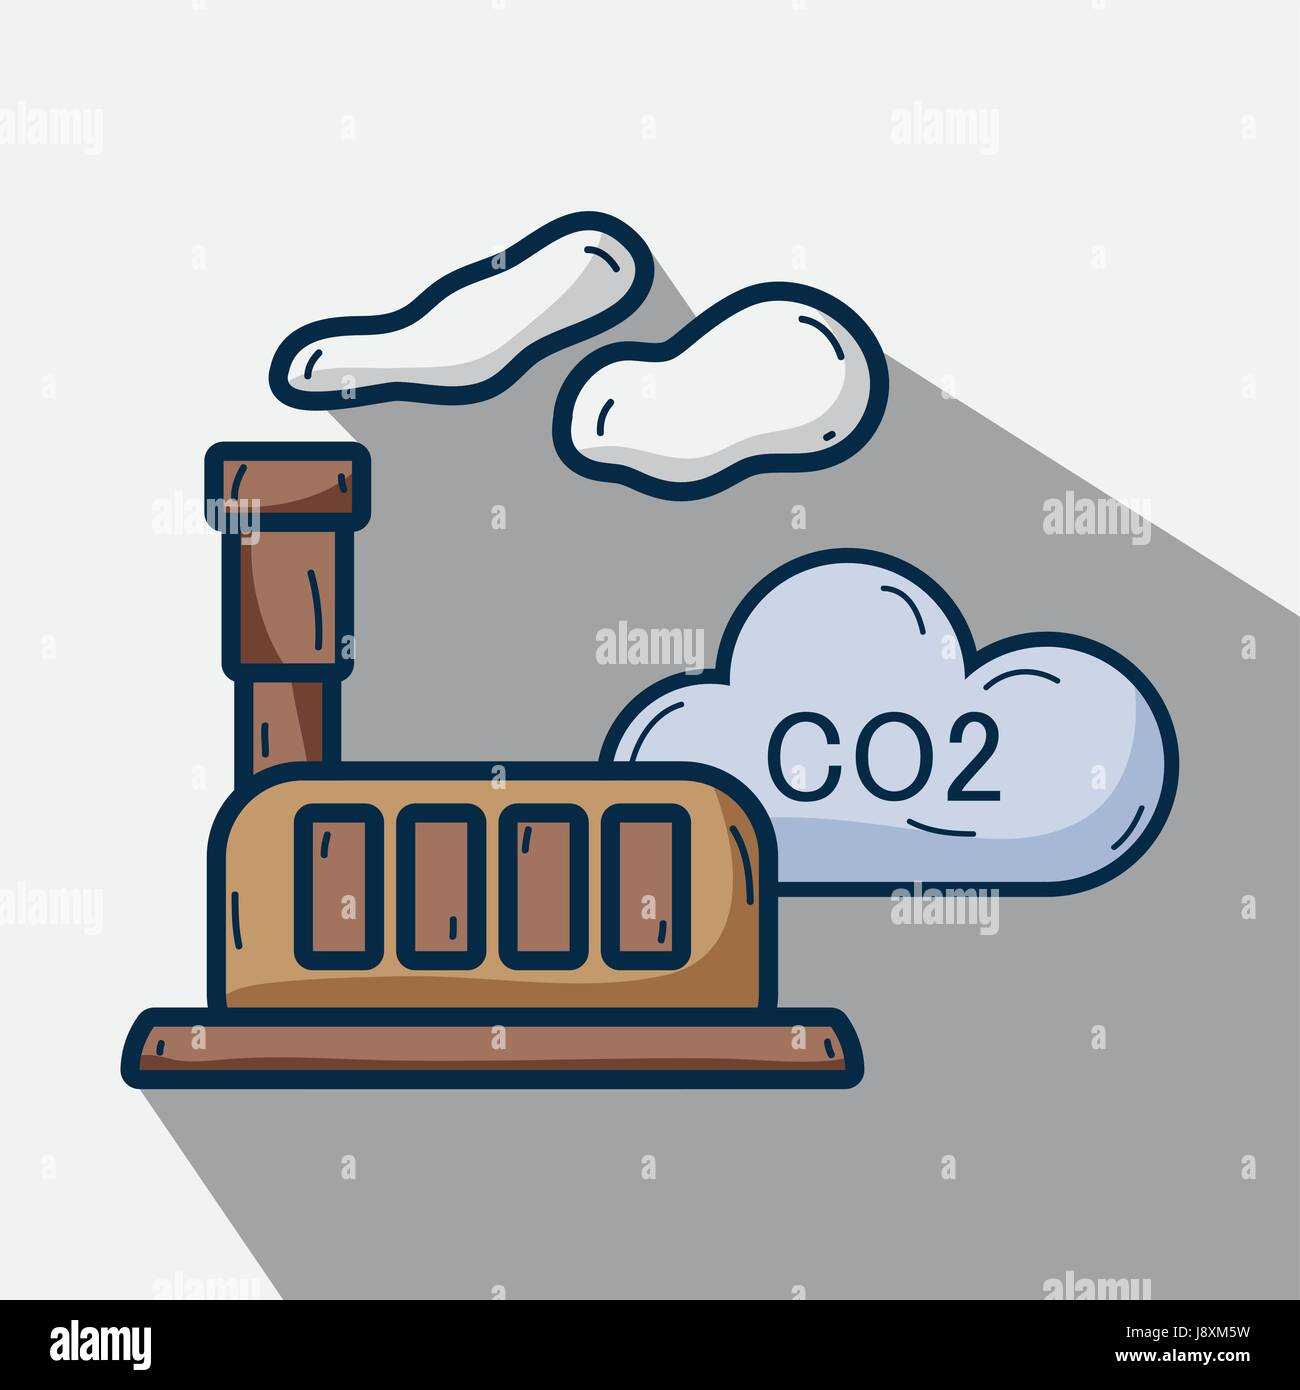 factory with co2 pollution and contaminating of planet - Stock Image